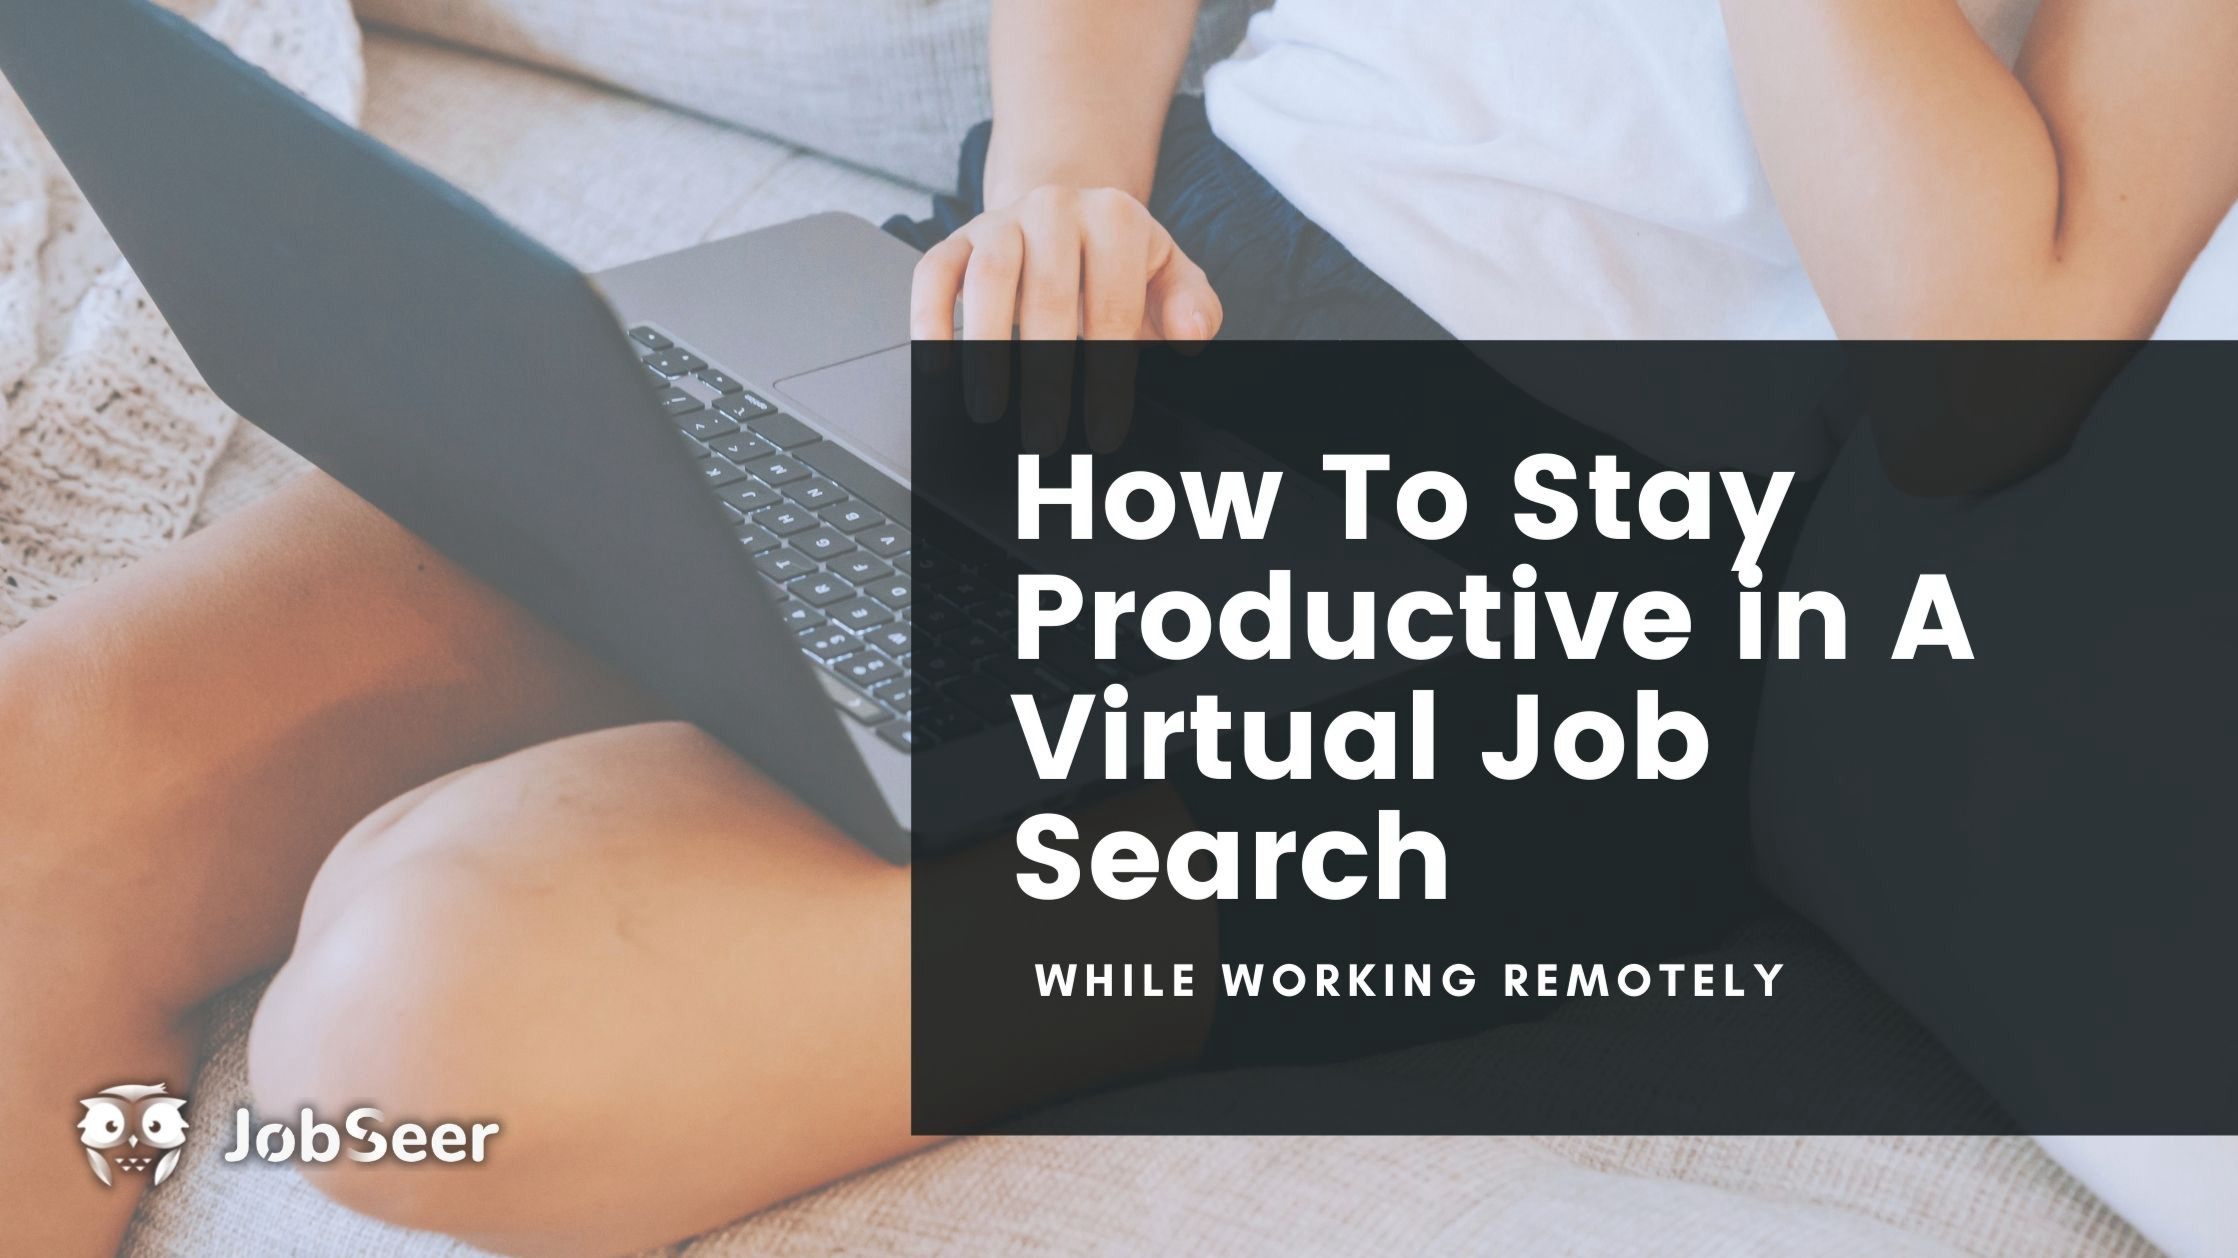 how-to-stay-productive-in-a-virtual-job-search-while-working-remotely